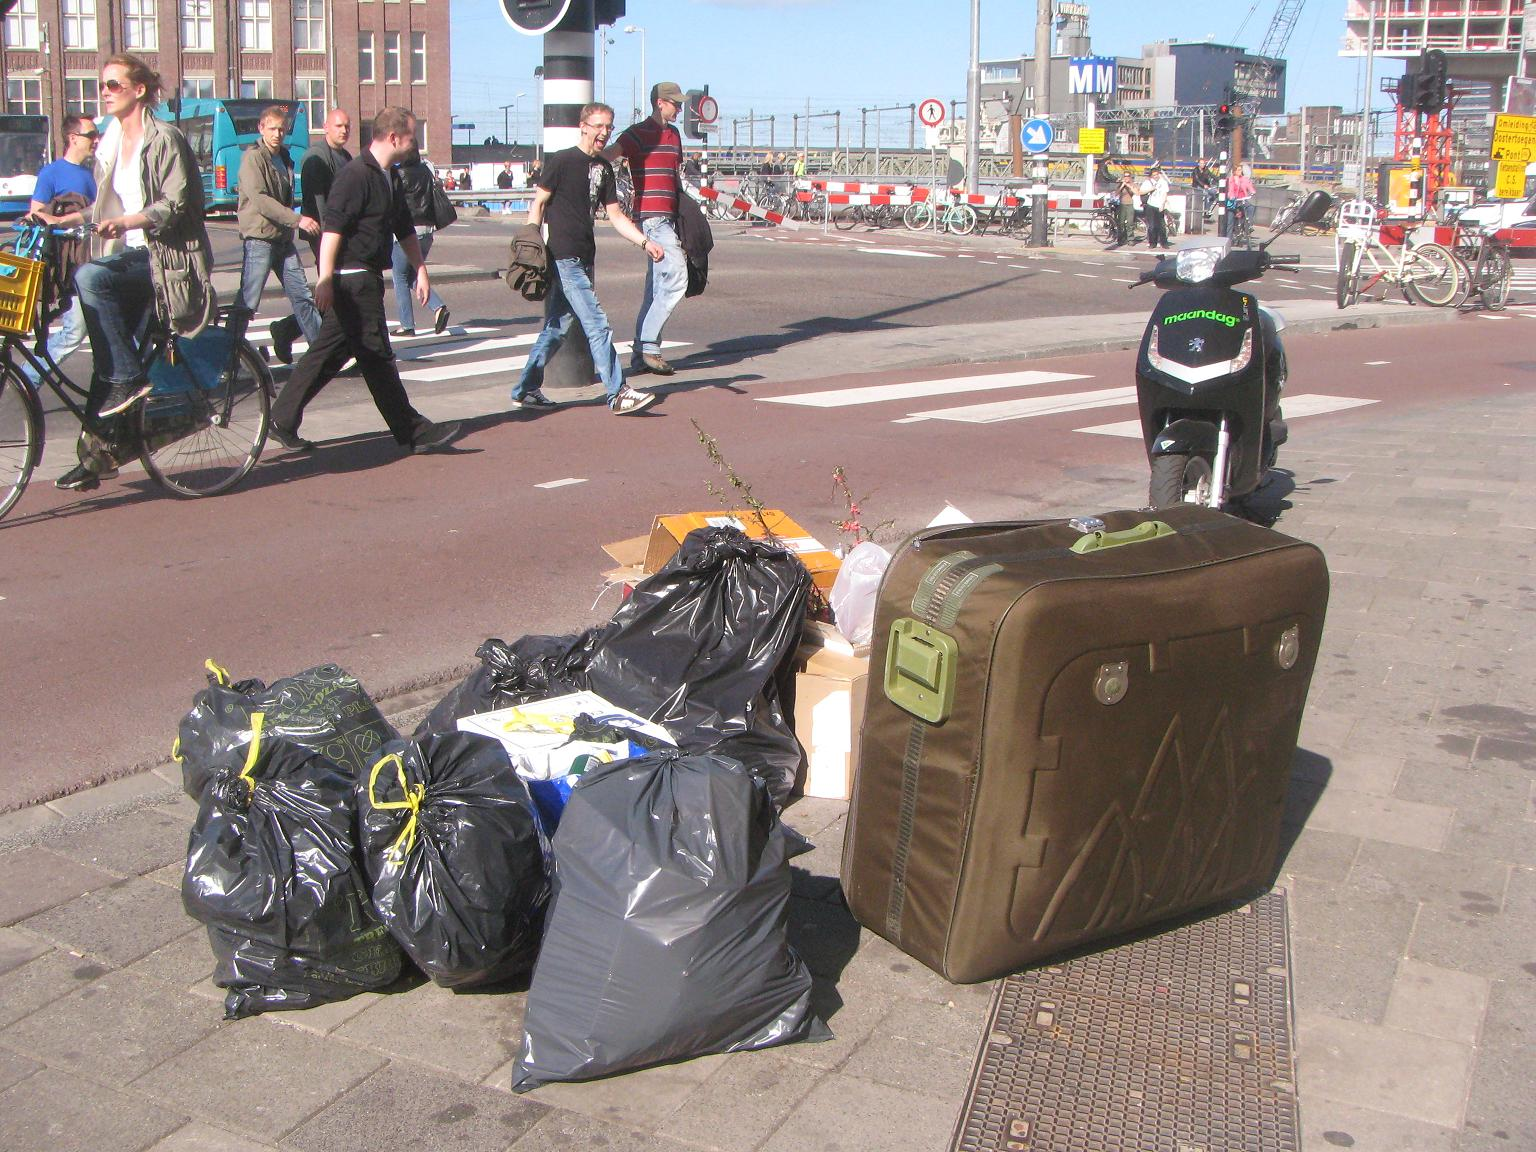 Mystery suitcase on street in garbage in Amsterdam